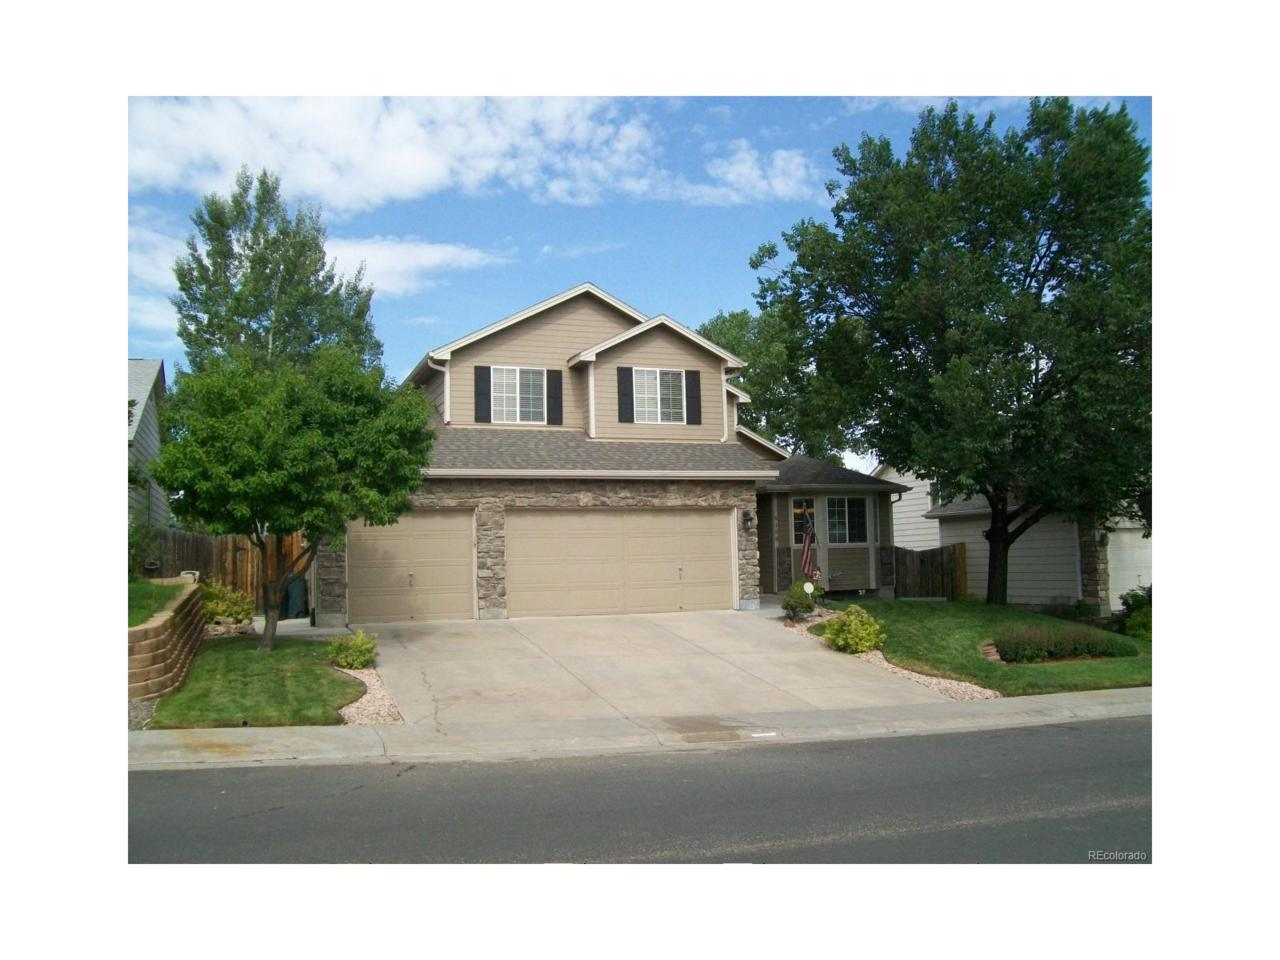 5153 S Ukraine Street, Aurora, CO 80015 (MLS #7048505) :: 8z Real Estate